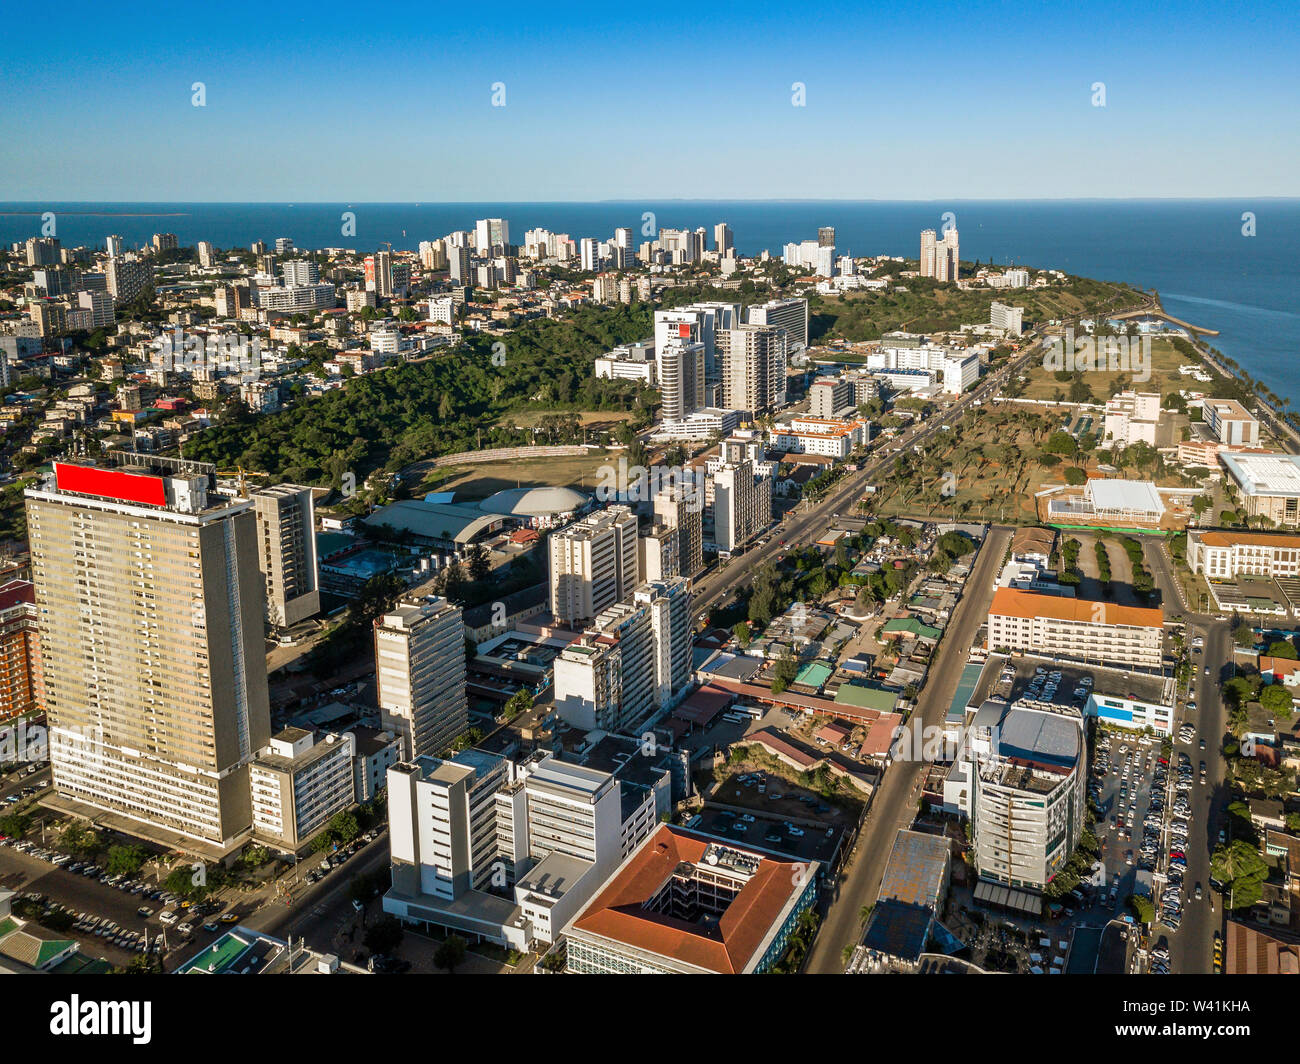 Aerial view of downtown of Maputo, capital city of Mozambique, Africa Stock Photo